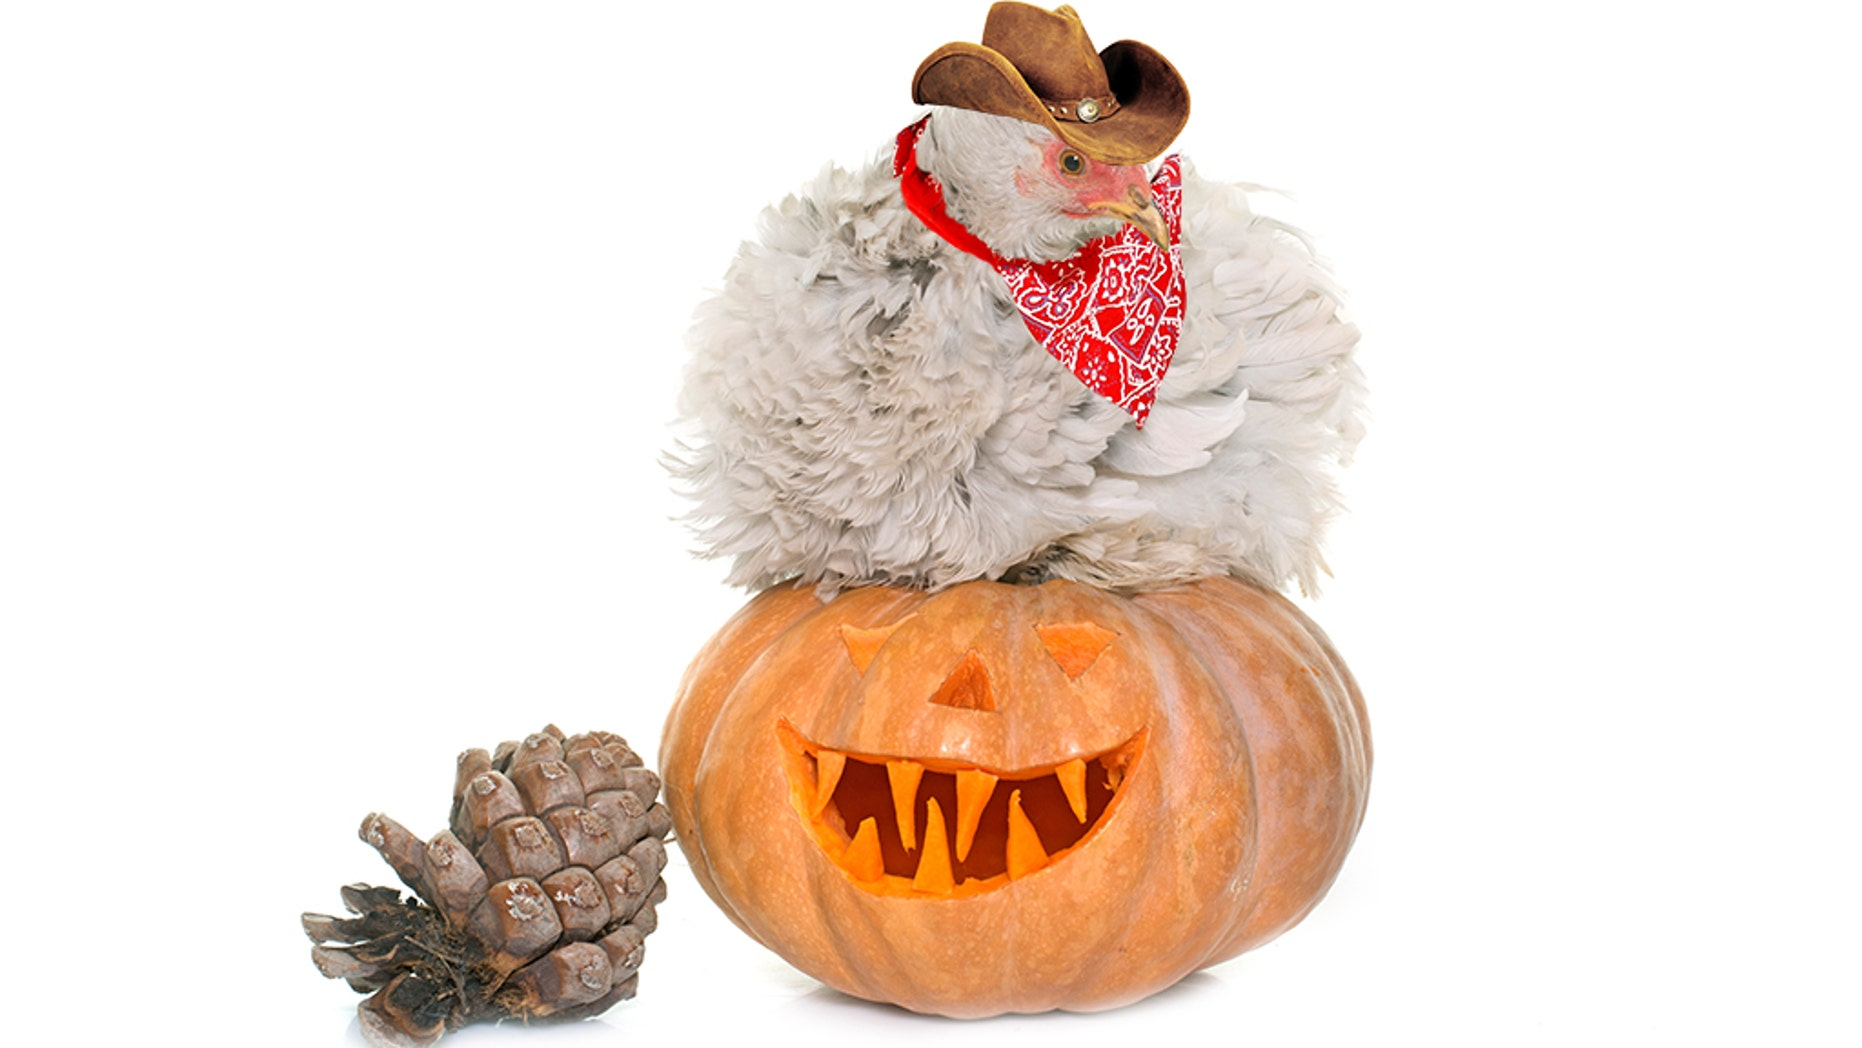 The Atlanta-based CDC said costumed chickens for a night of trick-or-treating this Halloween run radiate the risk of infecting people with a particularly strong strain of salmonella.